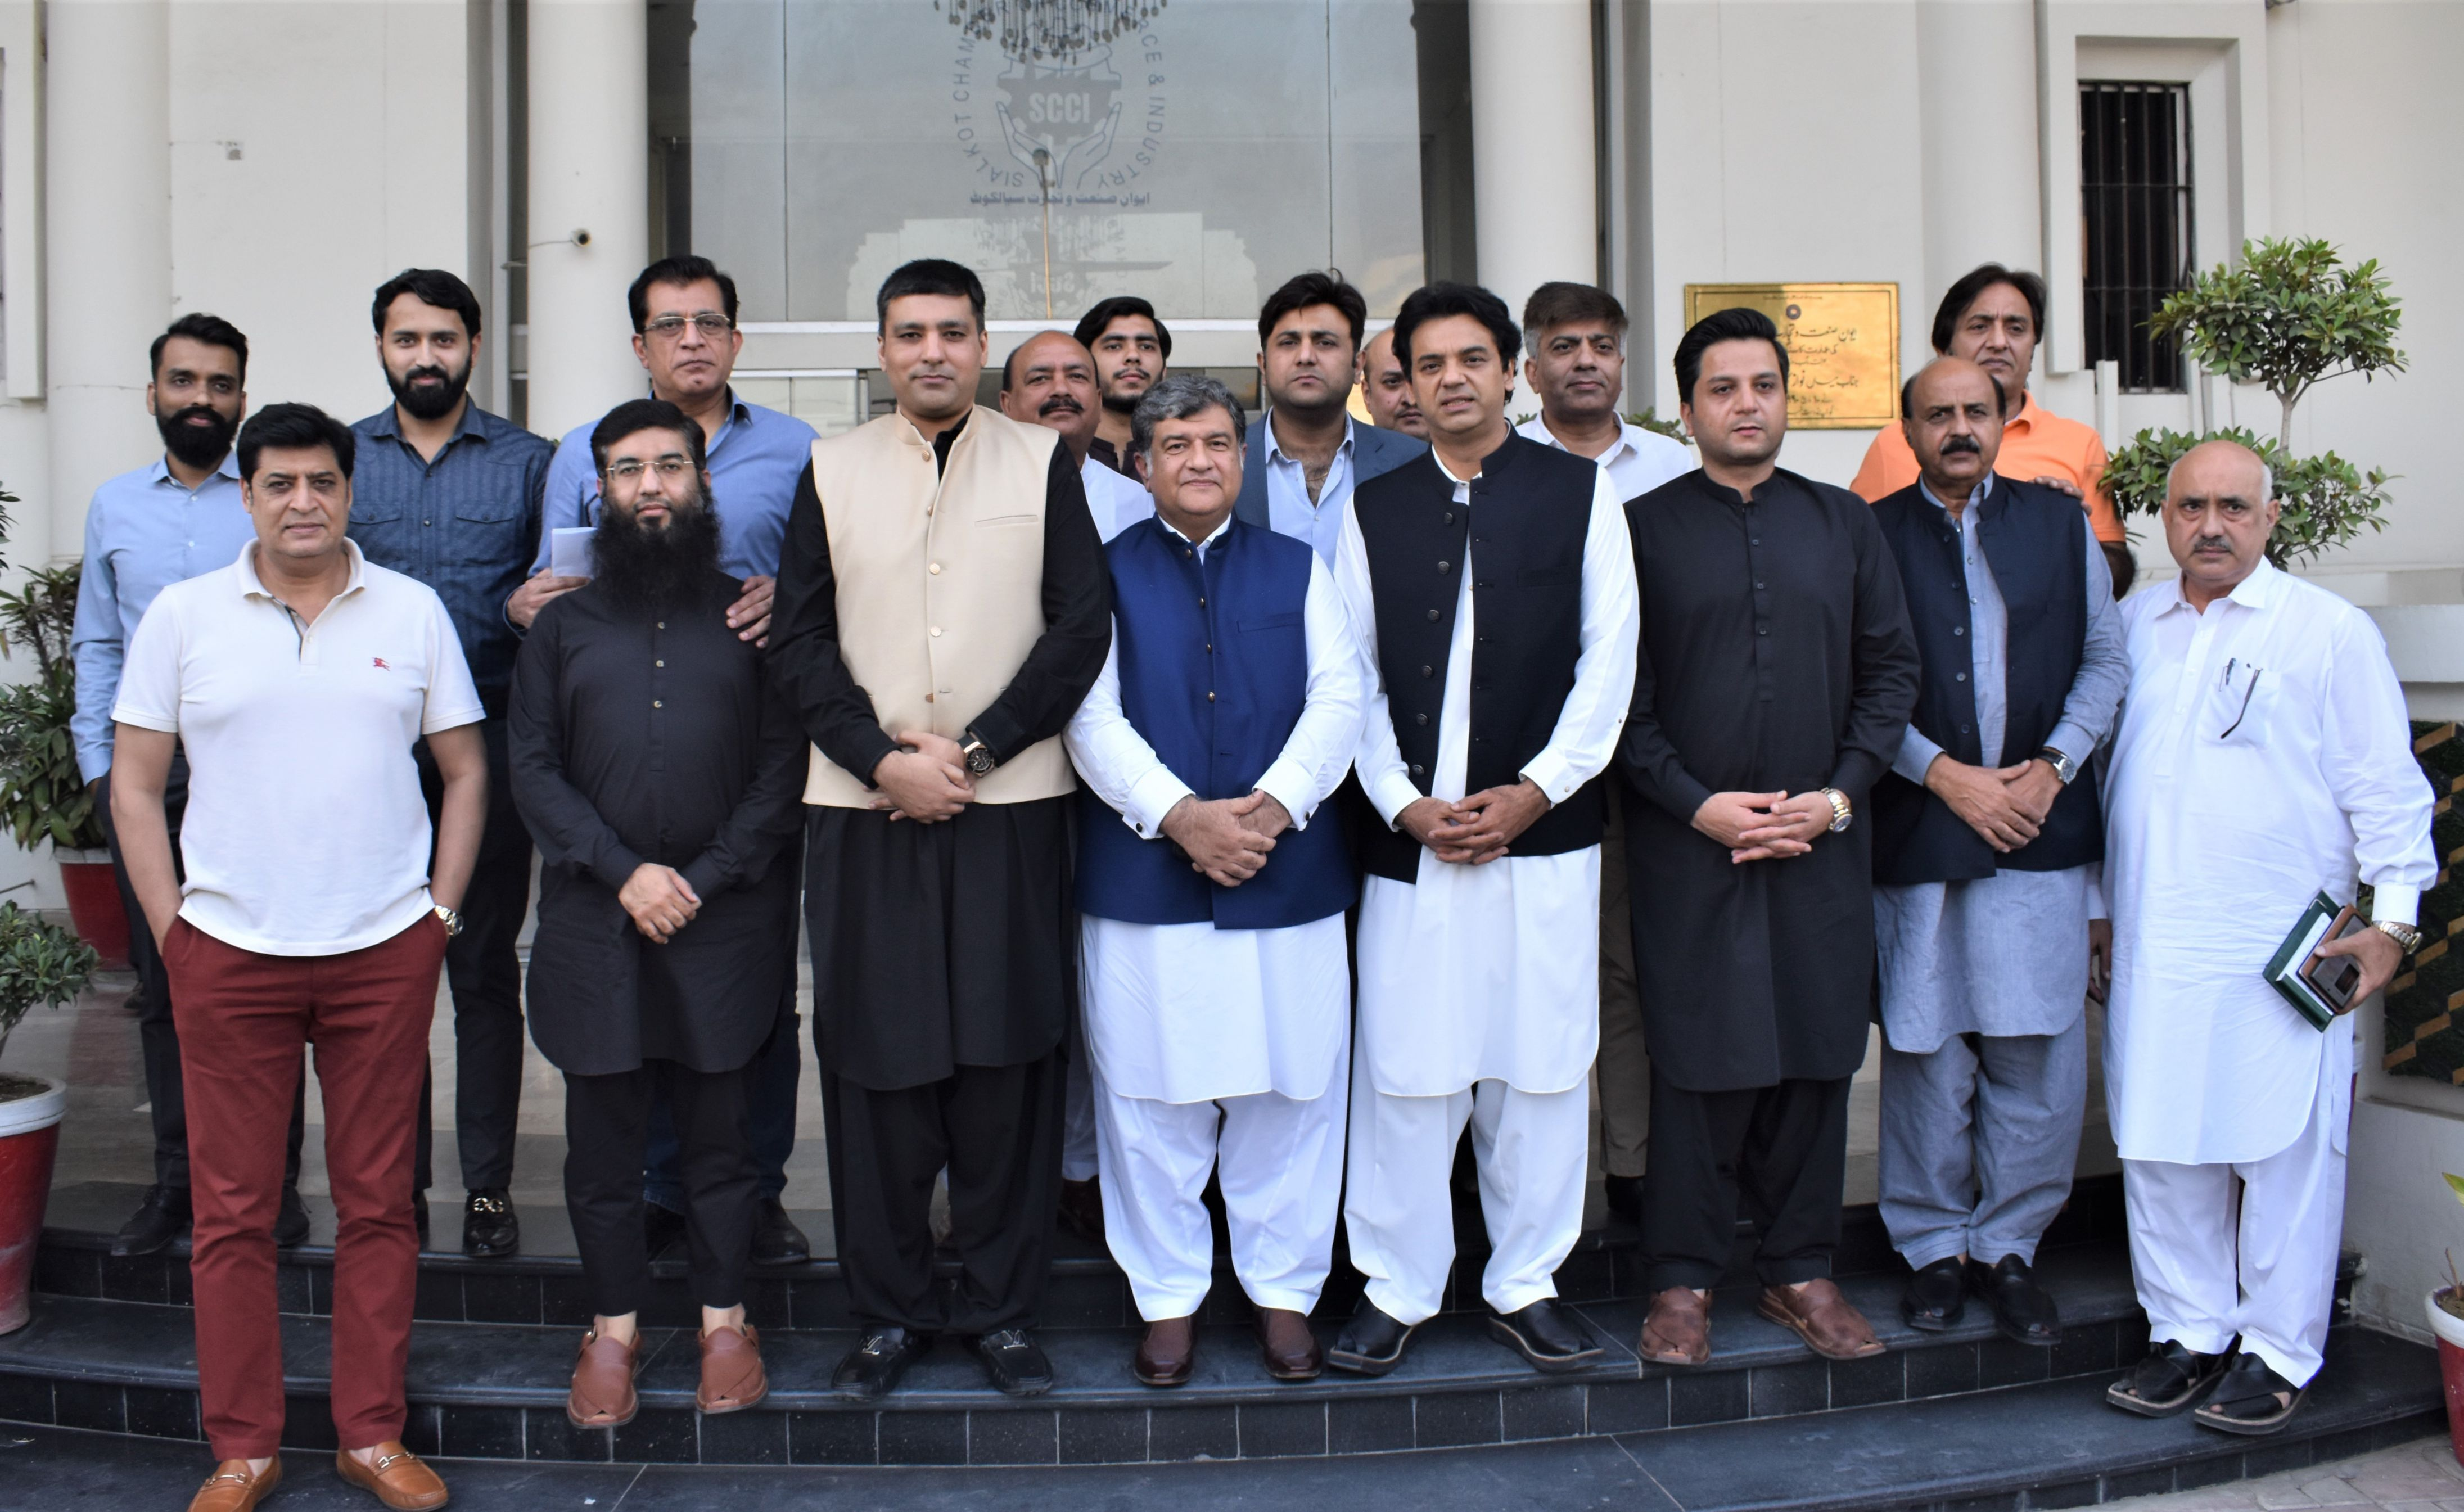 On October 16, 2021, Mr. Usman Dar, Special Assistant to the Prime Minister on Youth Affairs and Ch Muhammad Akhlaq, Provincial Minister of Punjab for Special Education visited Sialkot Chamber of Commerce & Industry and had a meeting with President, Senior Vice President and Vice President, SCCI to discuss matters related to Industry of Sialkot.